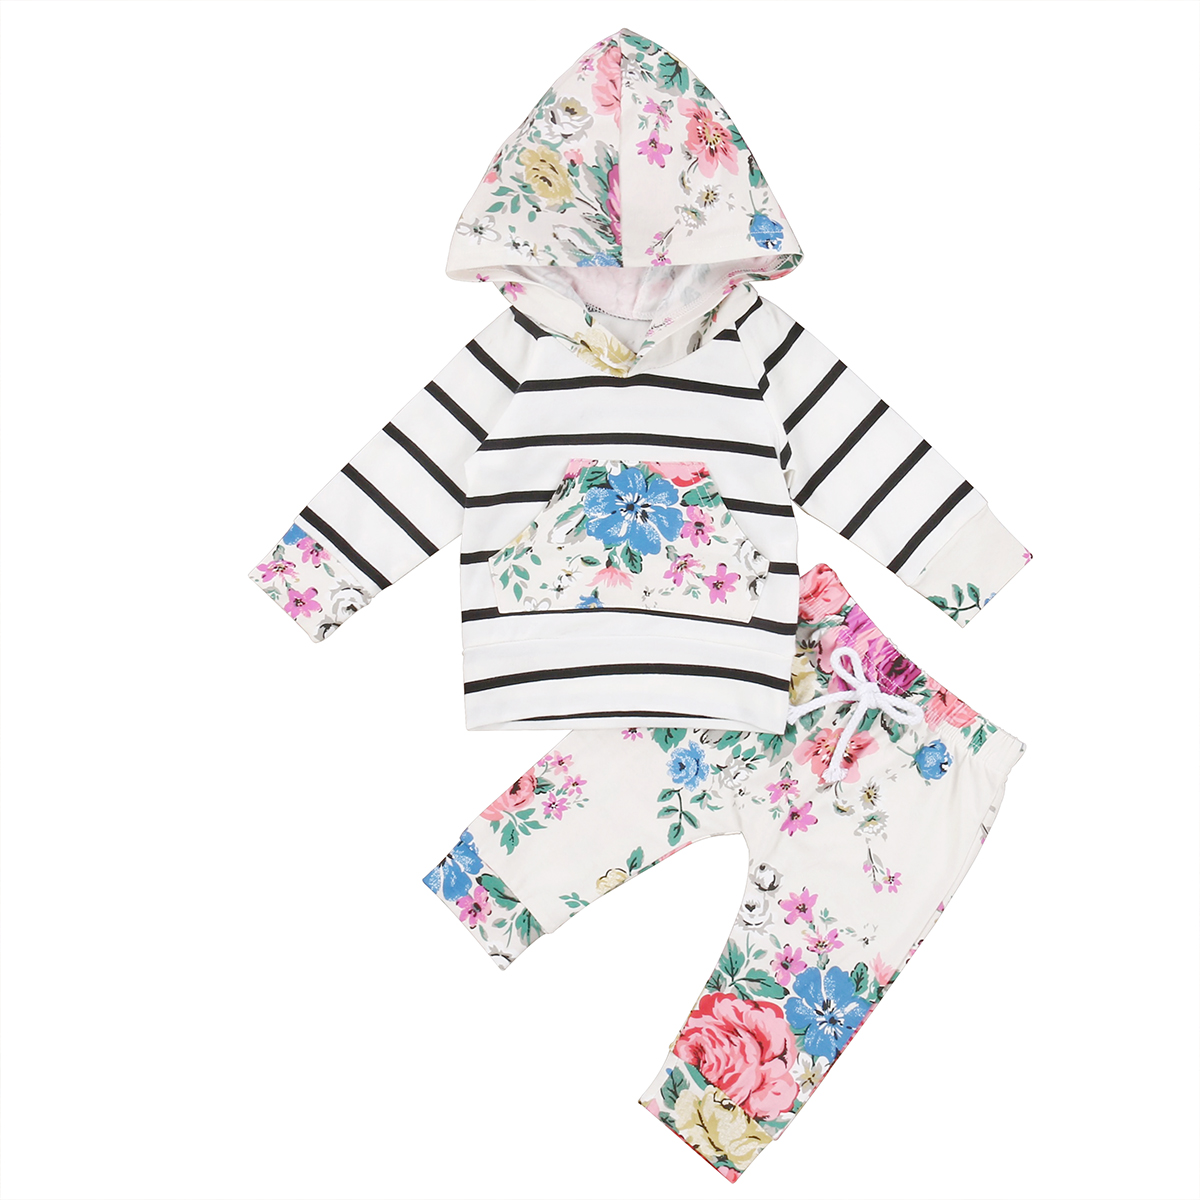 Pudcoco Newborn Infant Baby Girls Clothes Toddlers Cotton Cute Floral Long Sleevele Hooded T-shirt Tops+Pants Outfits Set 2017 cute floral infant baby girls summer flower romper sunsuit headband cotton outfits set clothes